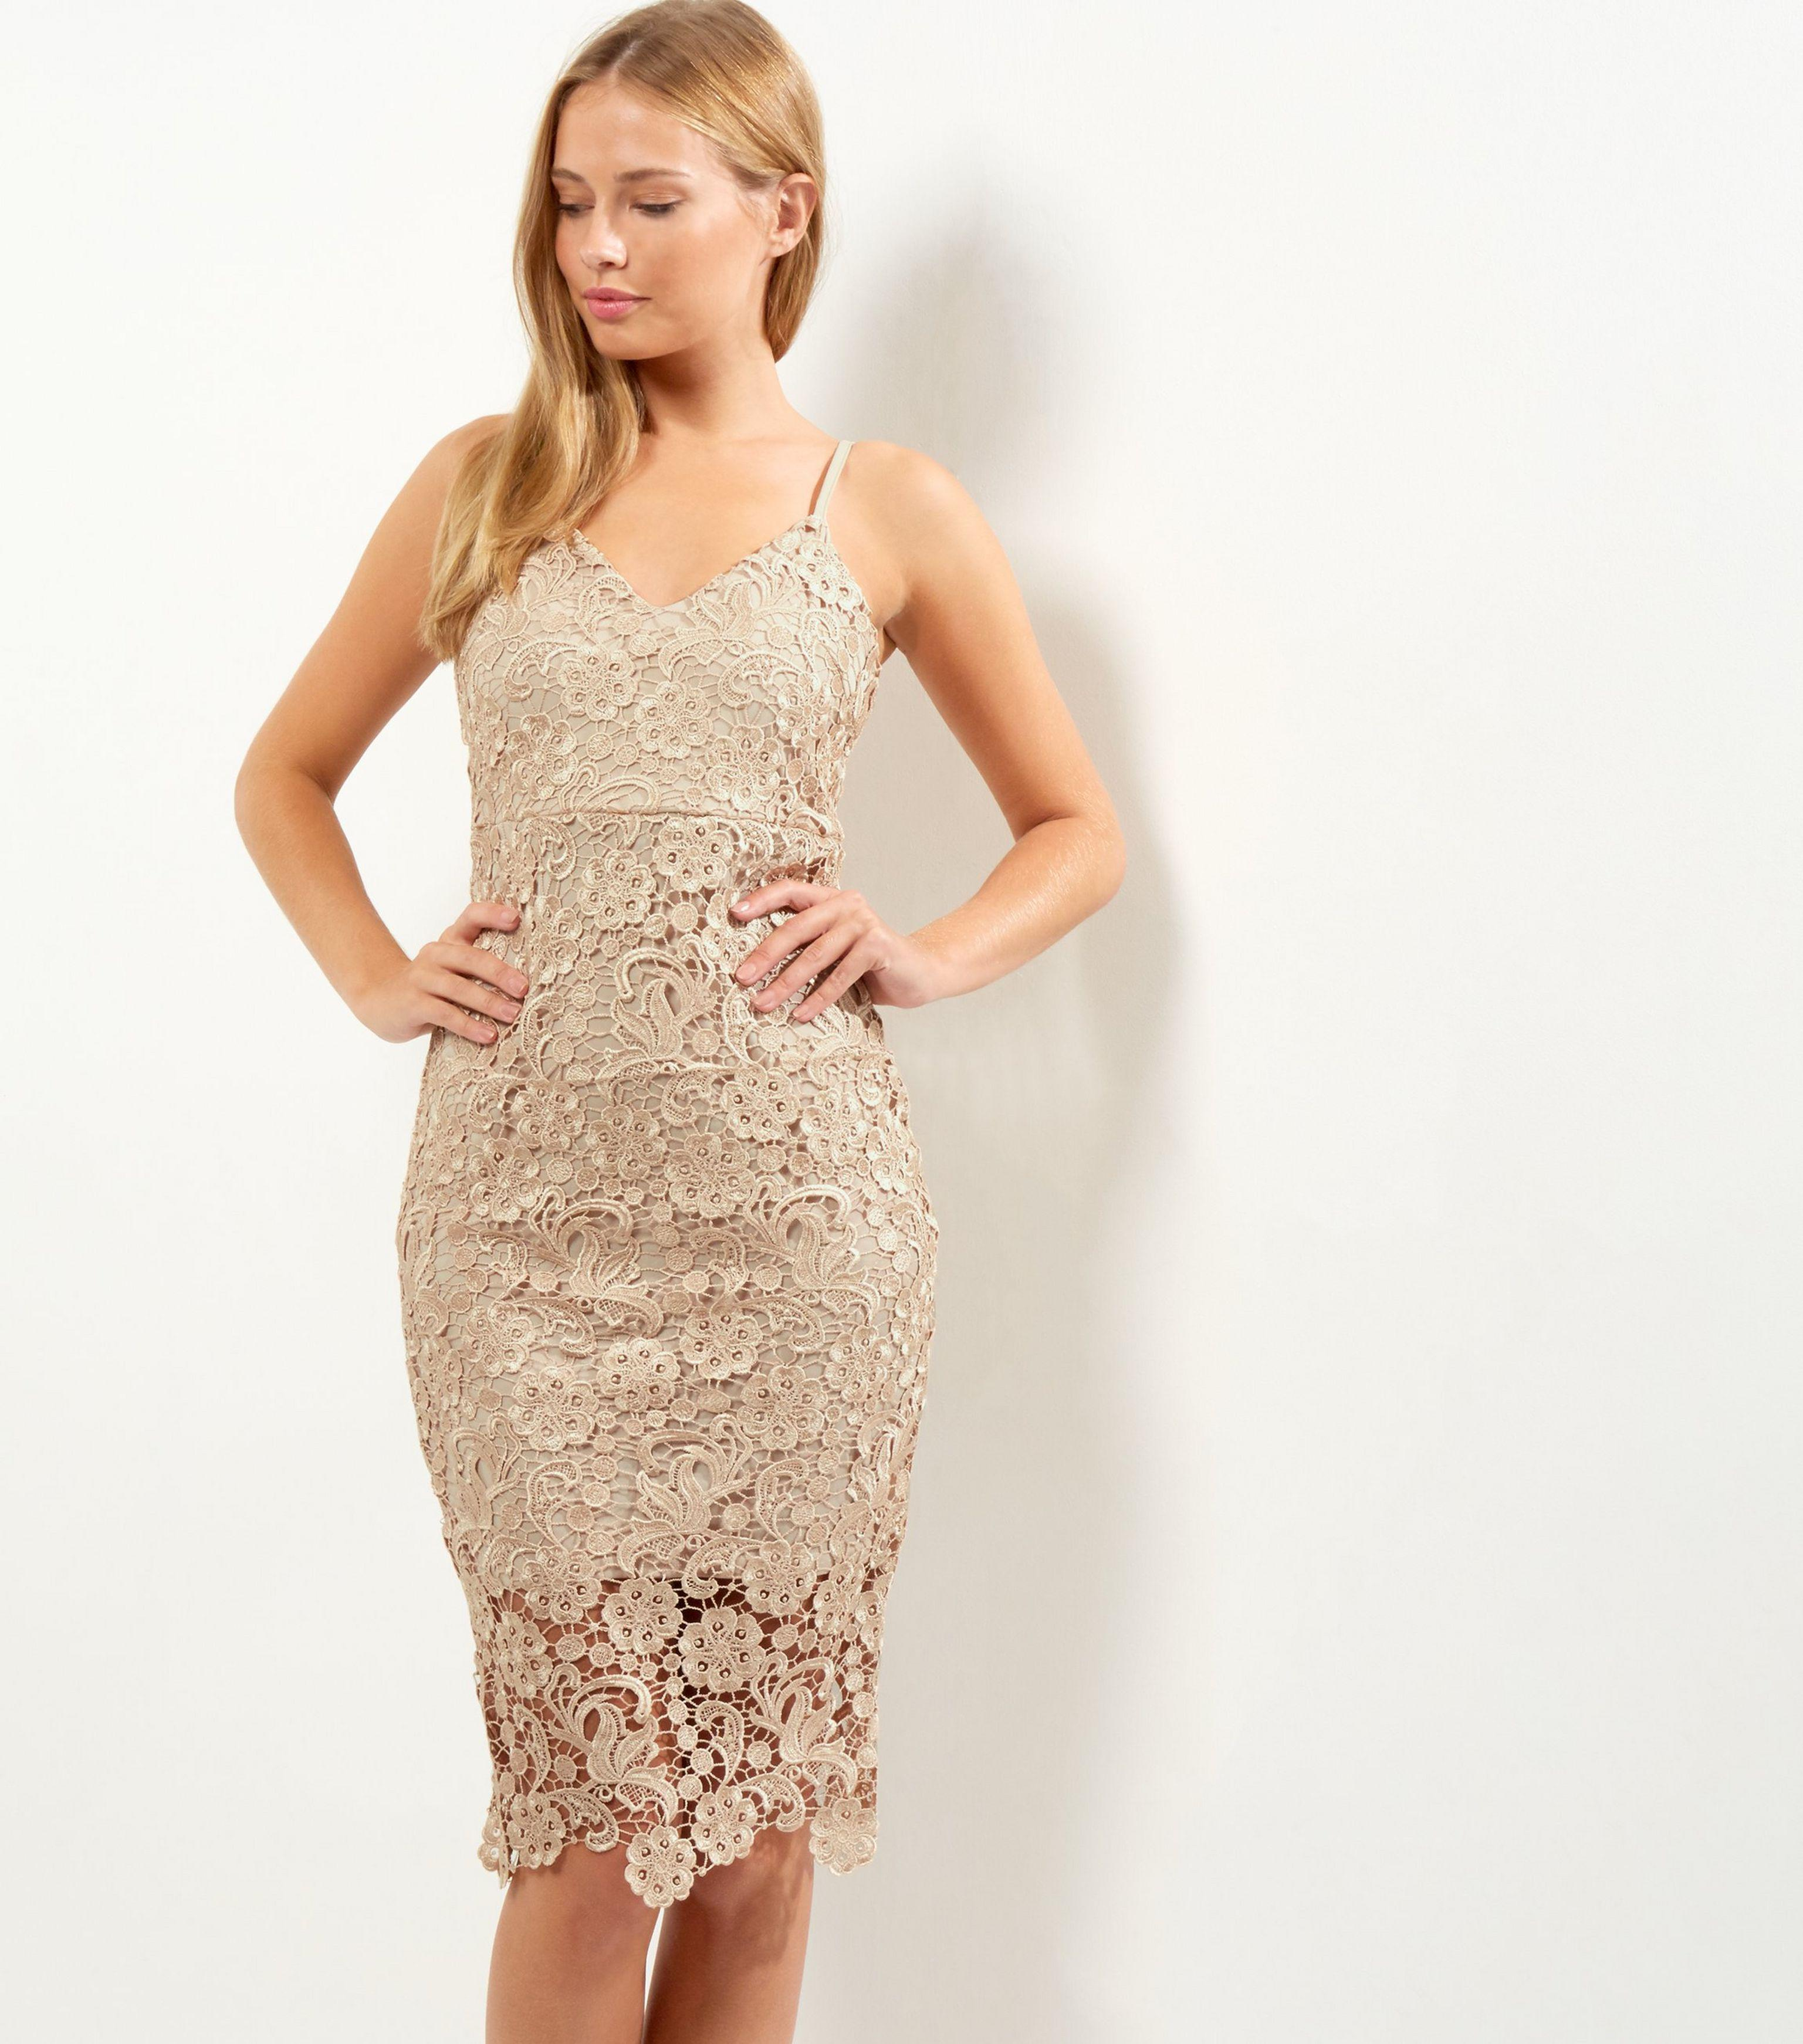 AX Paris Gold Crochet Lace V Neck Midi Dress in Metallic - Lyst 1ad996336